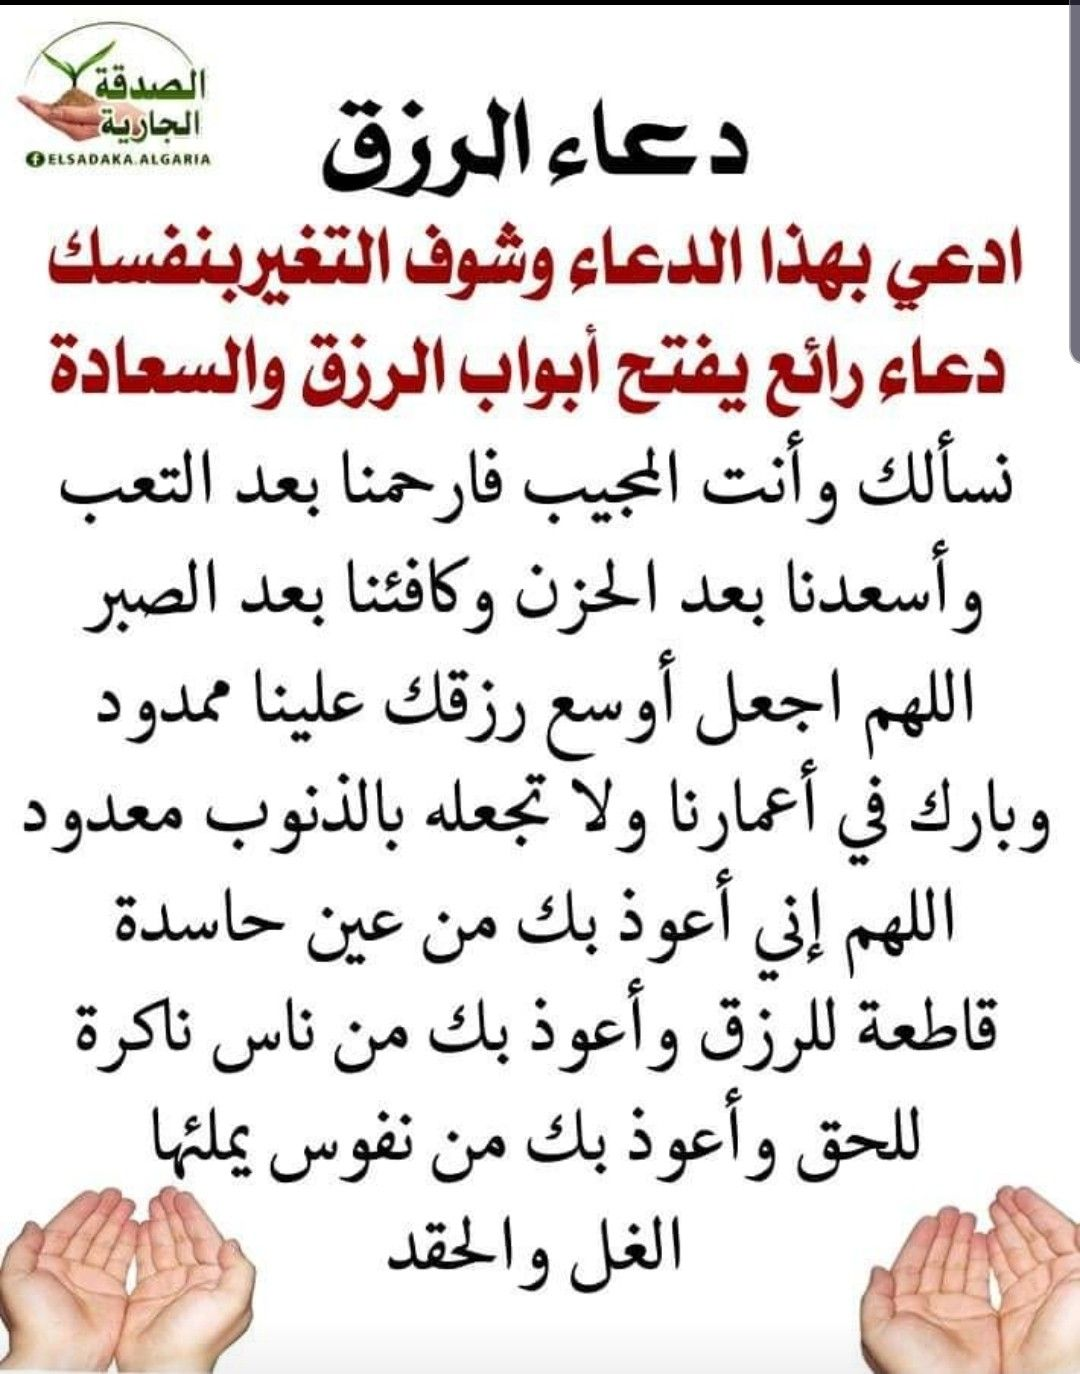 Pin By The Noble Quran On I Love Allah Quran Islam The Prophet Miracles Hadith Heaven Prophets Faith Prayer Dua حكم وعبر احاديث الله اسلام قرآن دعاء Islam Beliefs Learn Islam Islamic